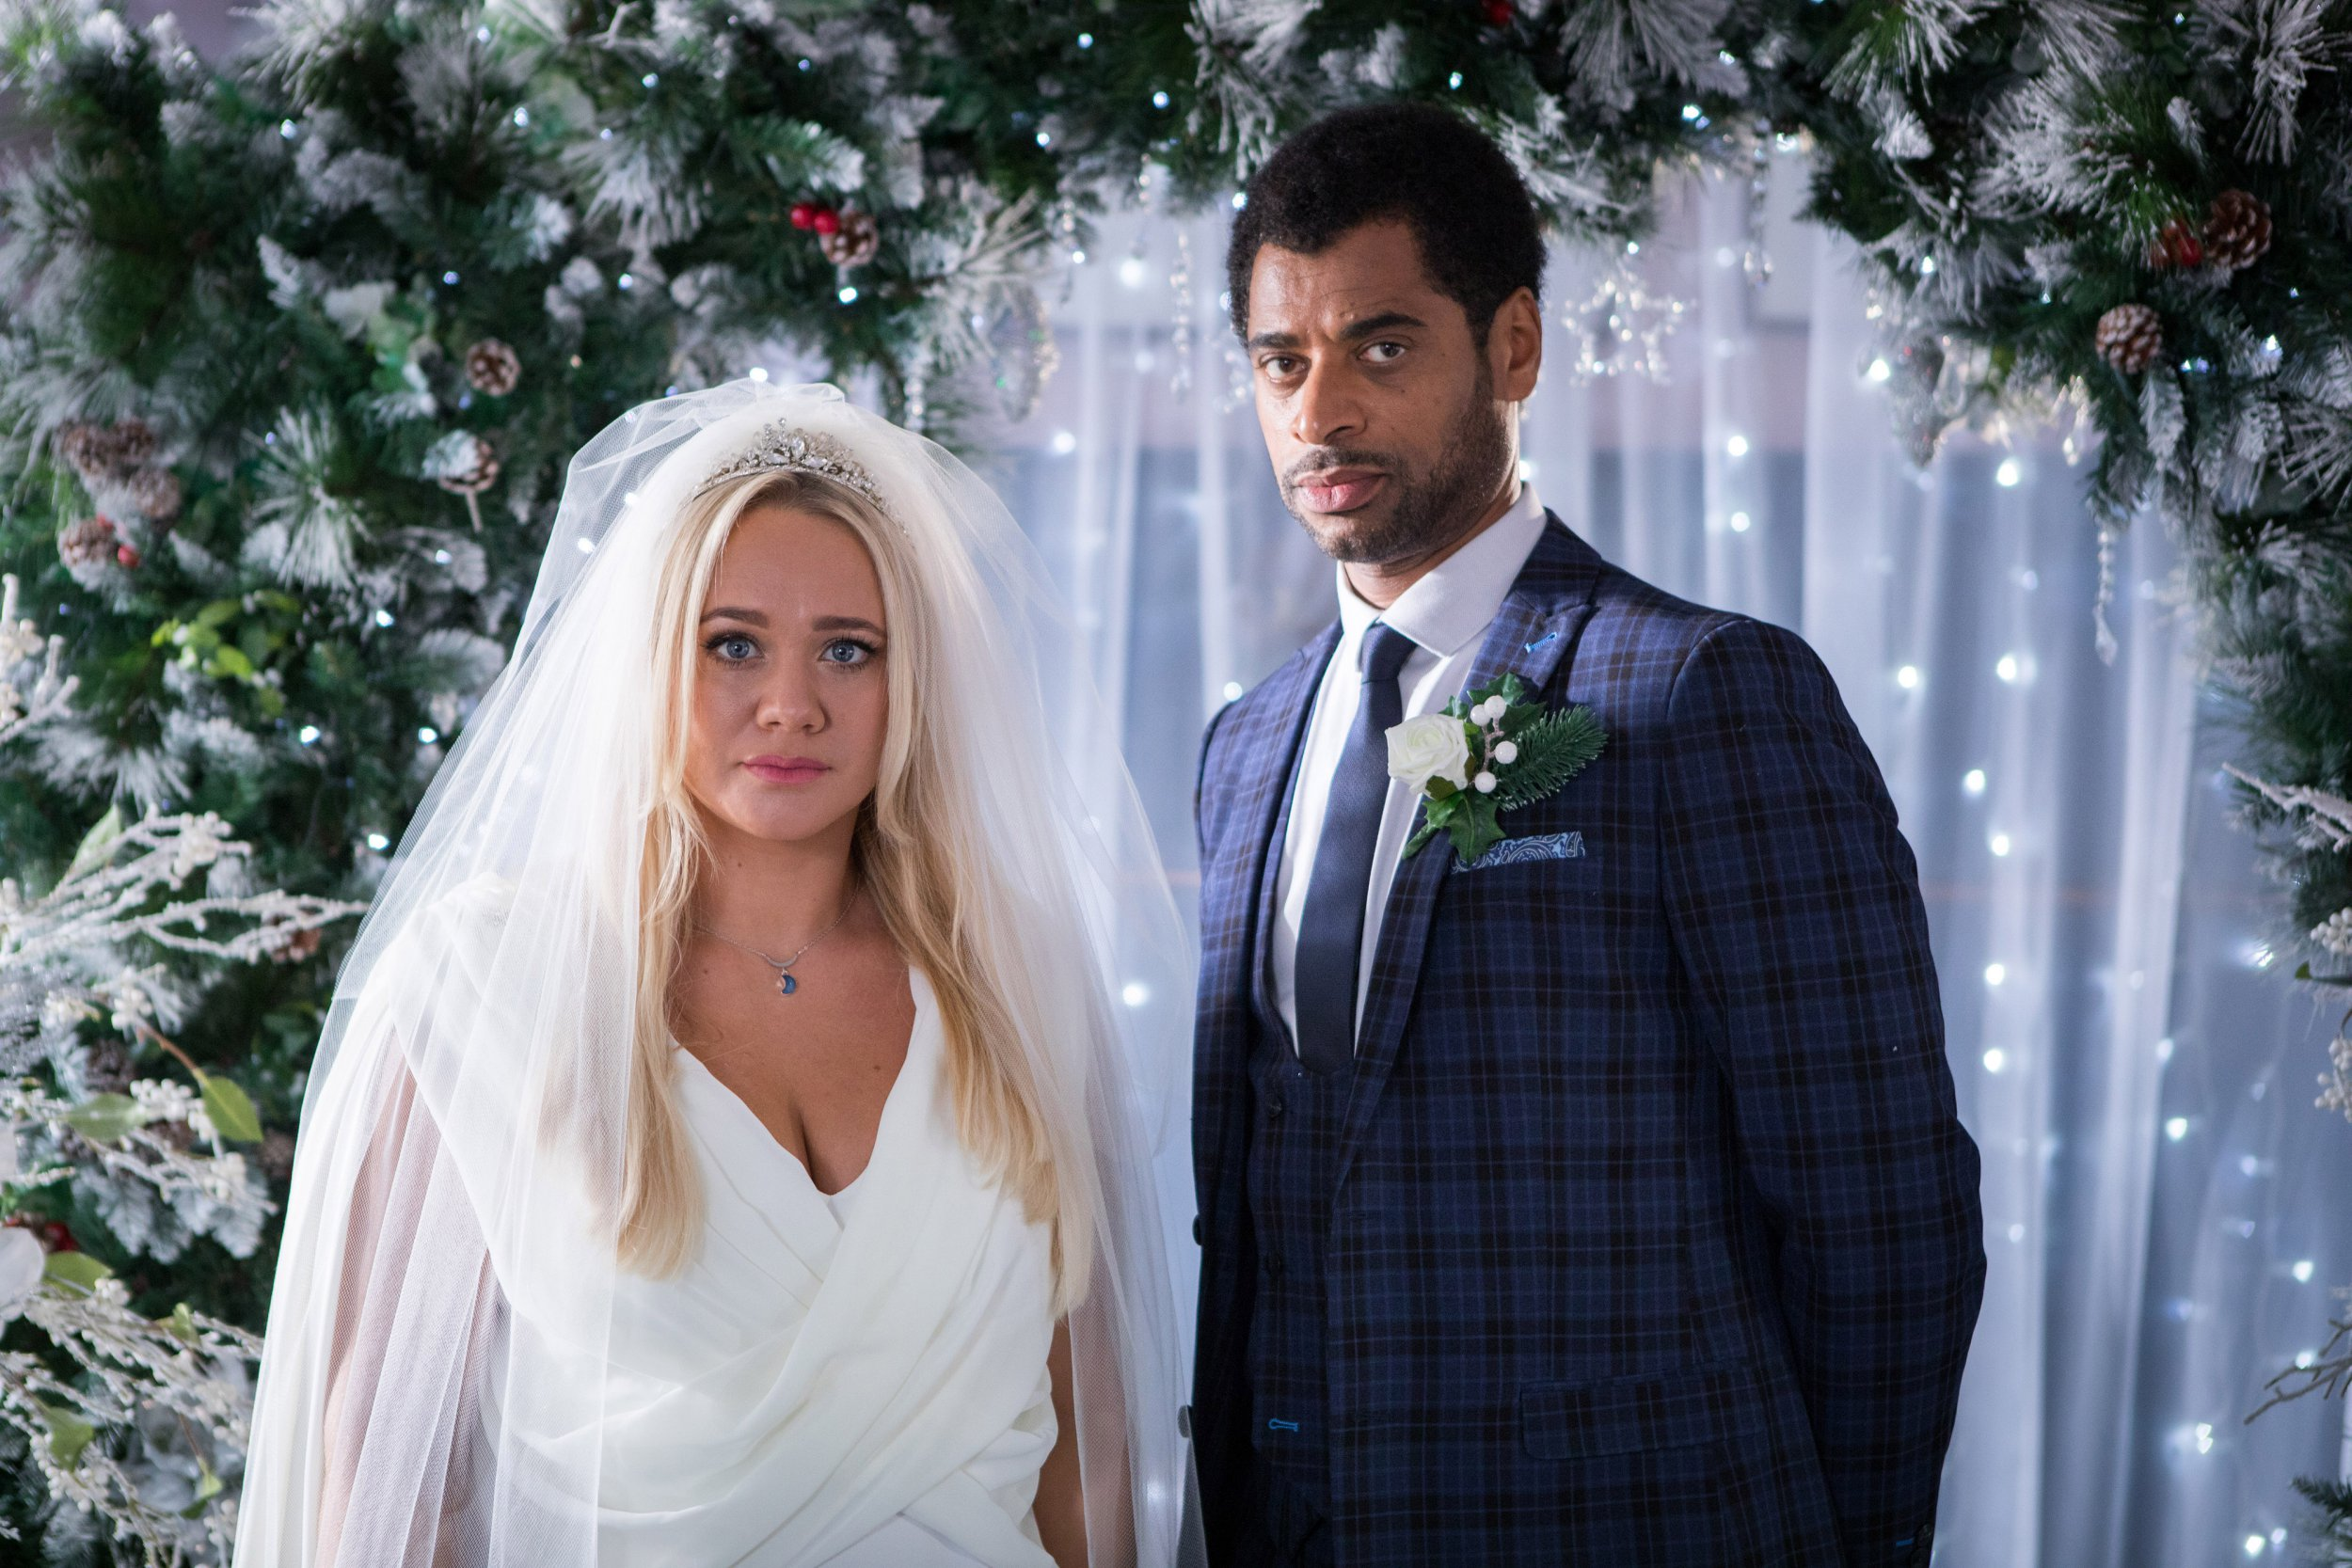 SIMONE AND MARTINE STOP THE WEDDING BETWEEN LOUIS AND LEELA